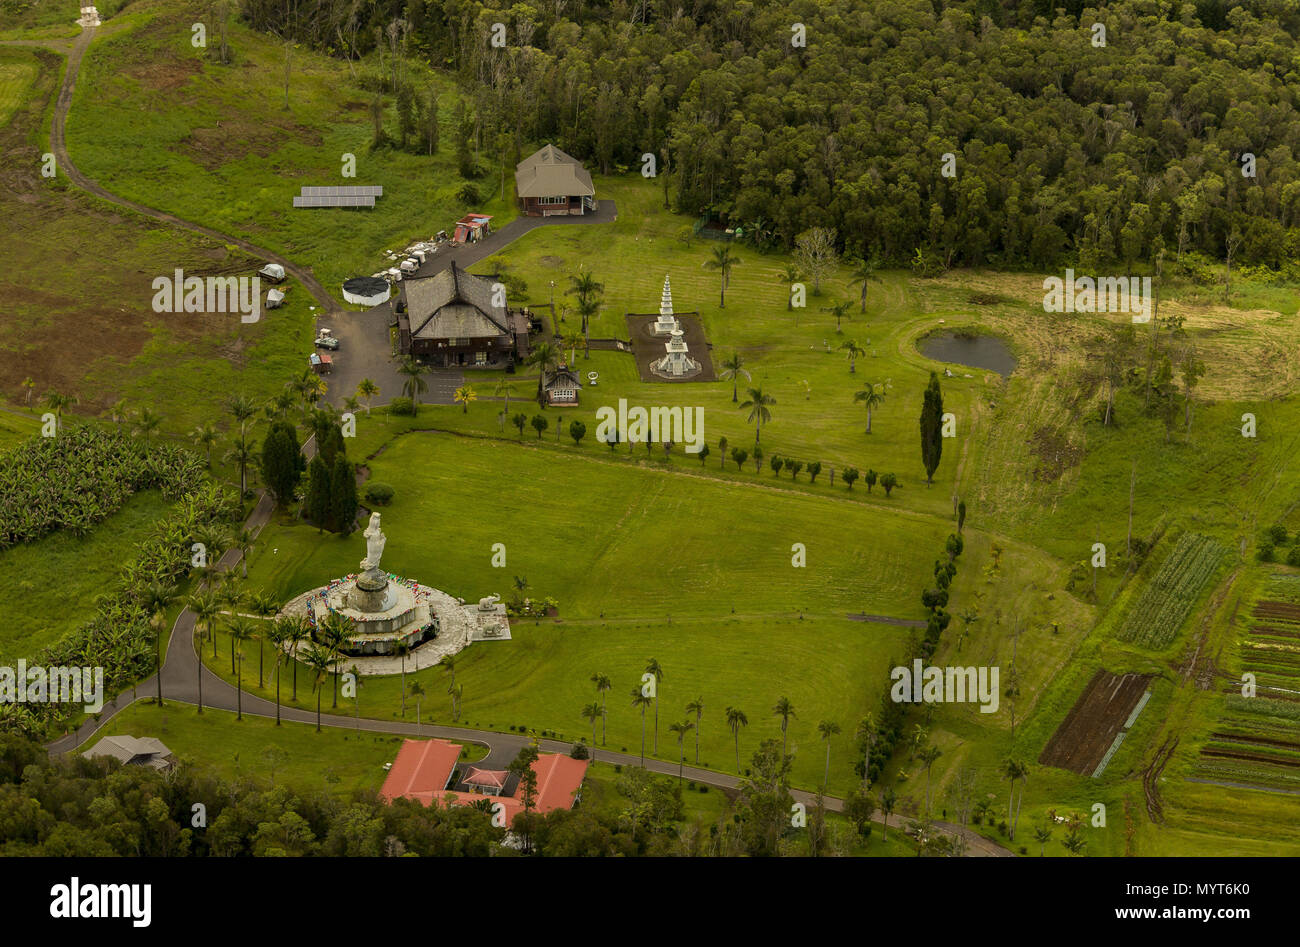 Pahoa, Hawaii, USA. 6th June, 2018. The grounds of a Buddhist temple outside Pahoa are untouched as the lower east rift zone eruption continues on Wednesday, June 6, 2018, in Pahoa, Hawaii. Photo by L.E. Baskow/LeftEyeImages Credit: L.E. Baskow/ZUMA Wire/Alamy Live News Stock Photo